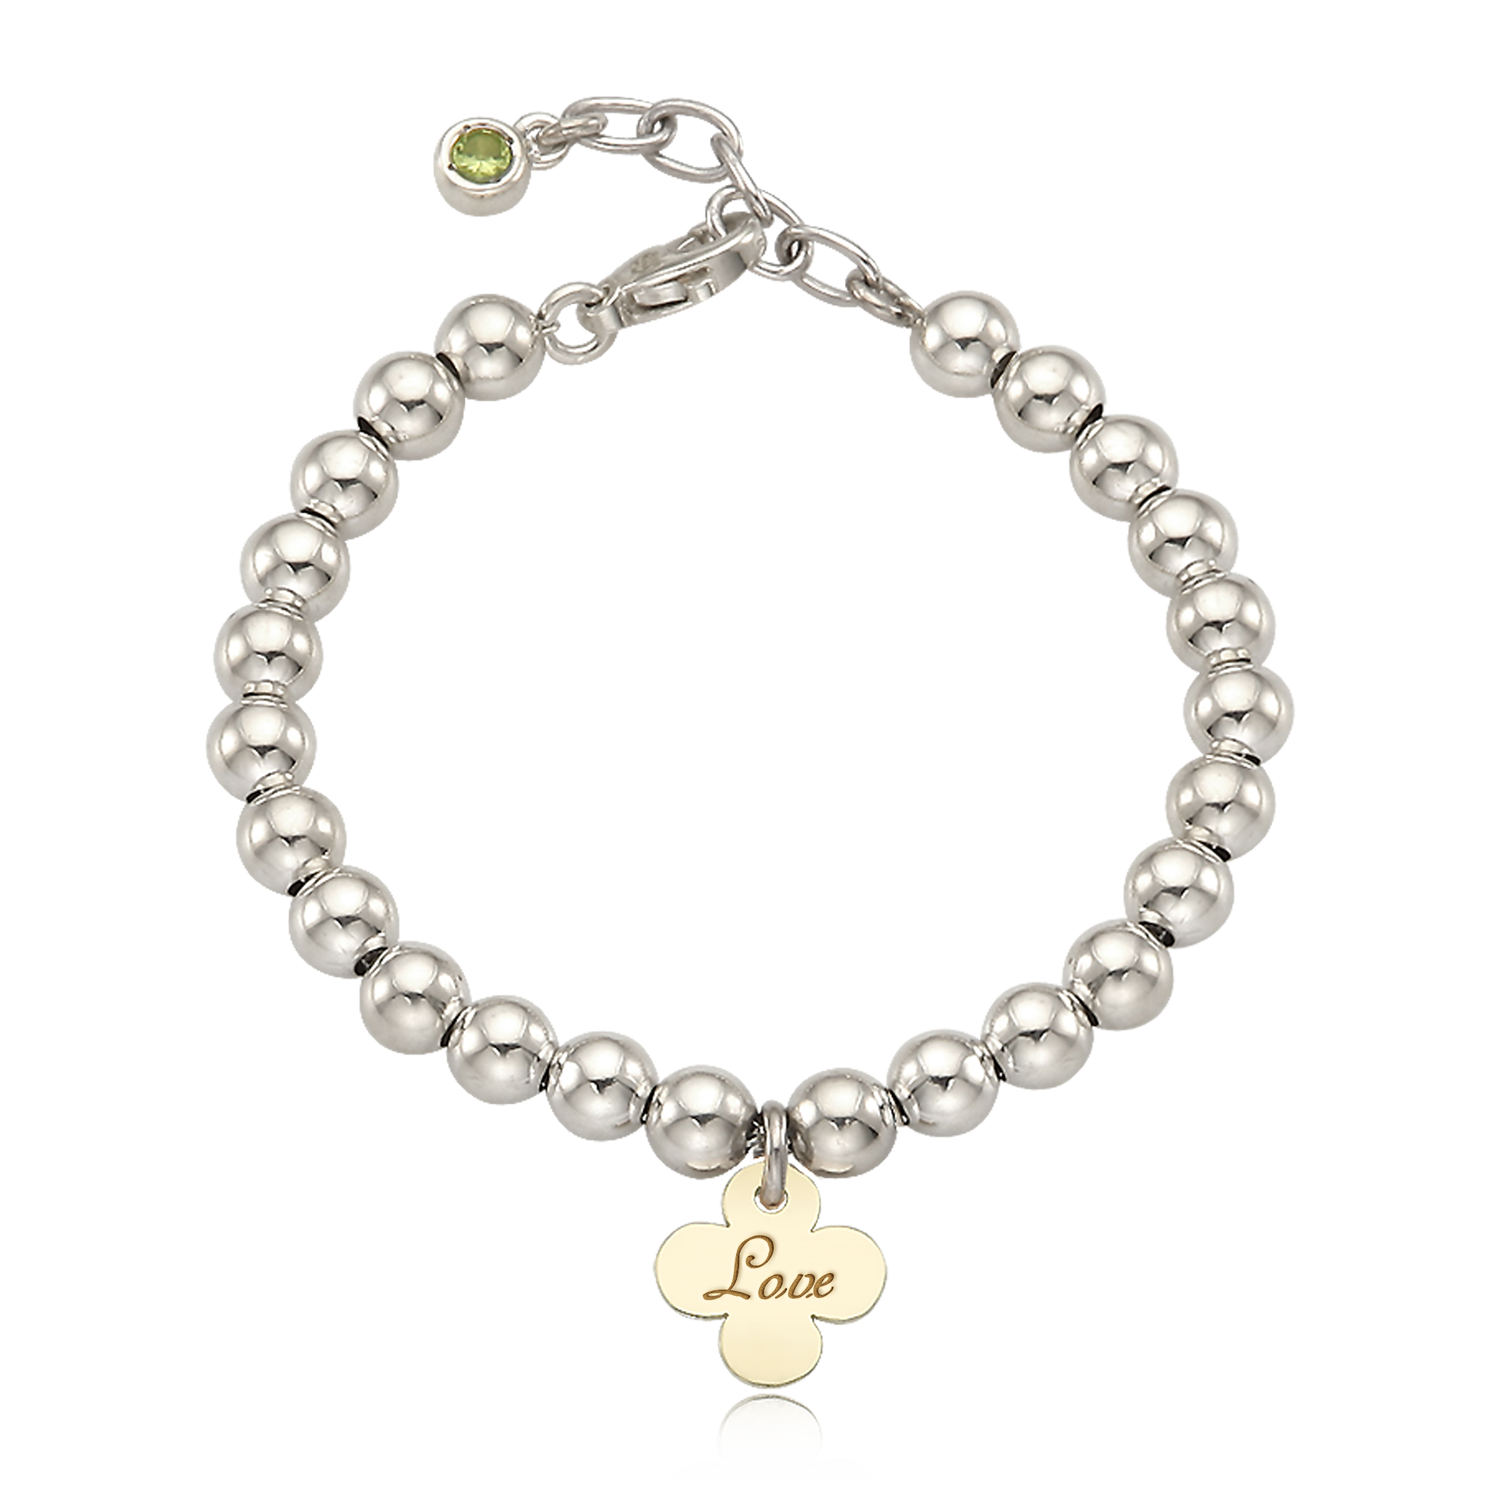 5K Gold Crover Charm Sterling Silver Bead  3mm Natural Birthstone Bracelet [ Personalized Engraving ]